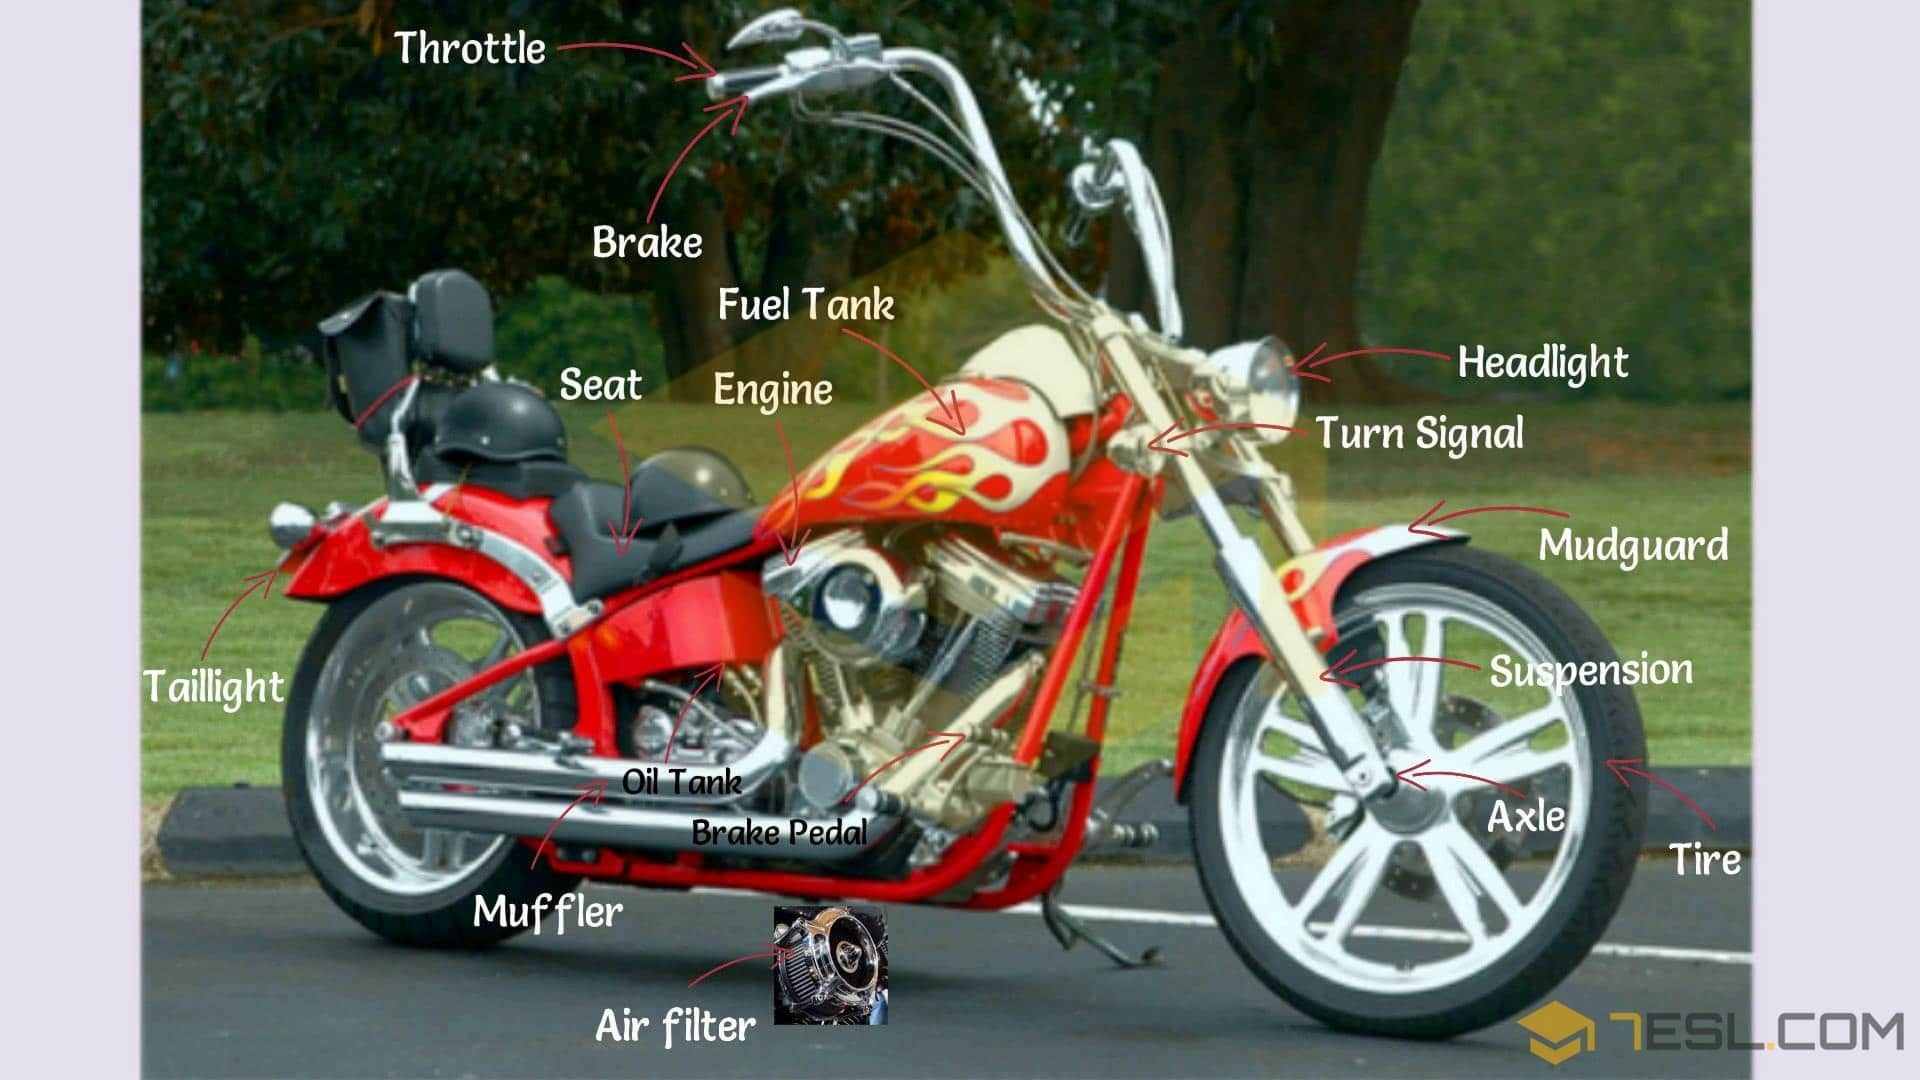 Motorcycle Parts Useful Parts Of A Motorcycle With Pictures